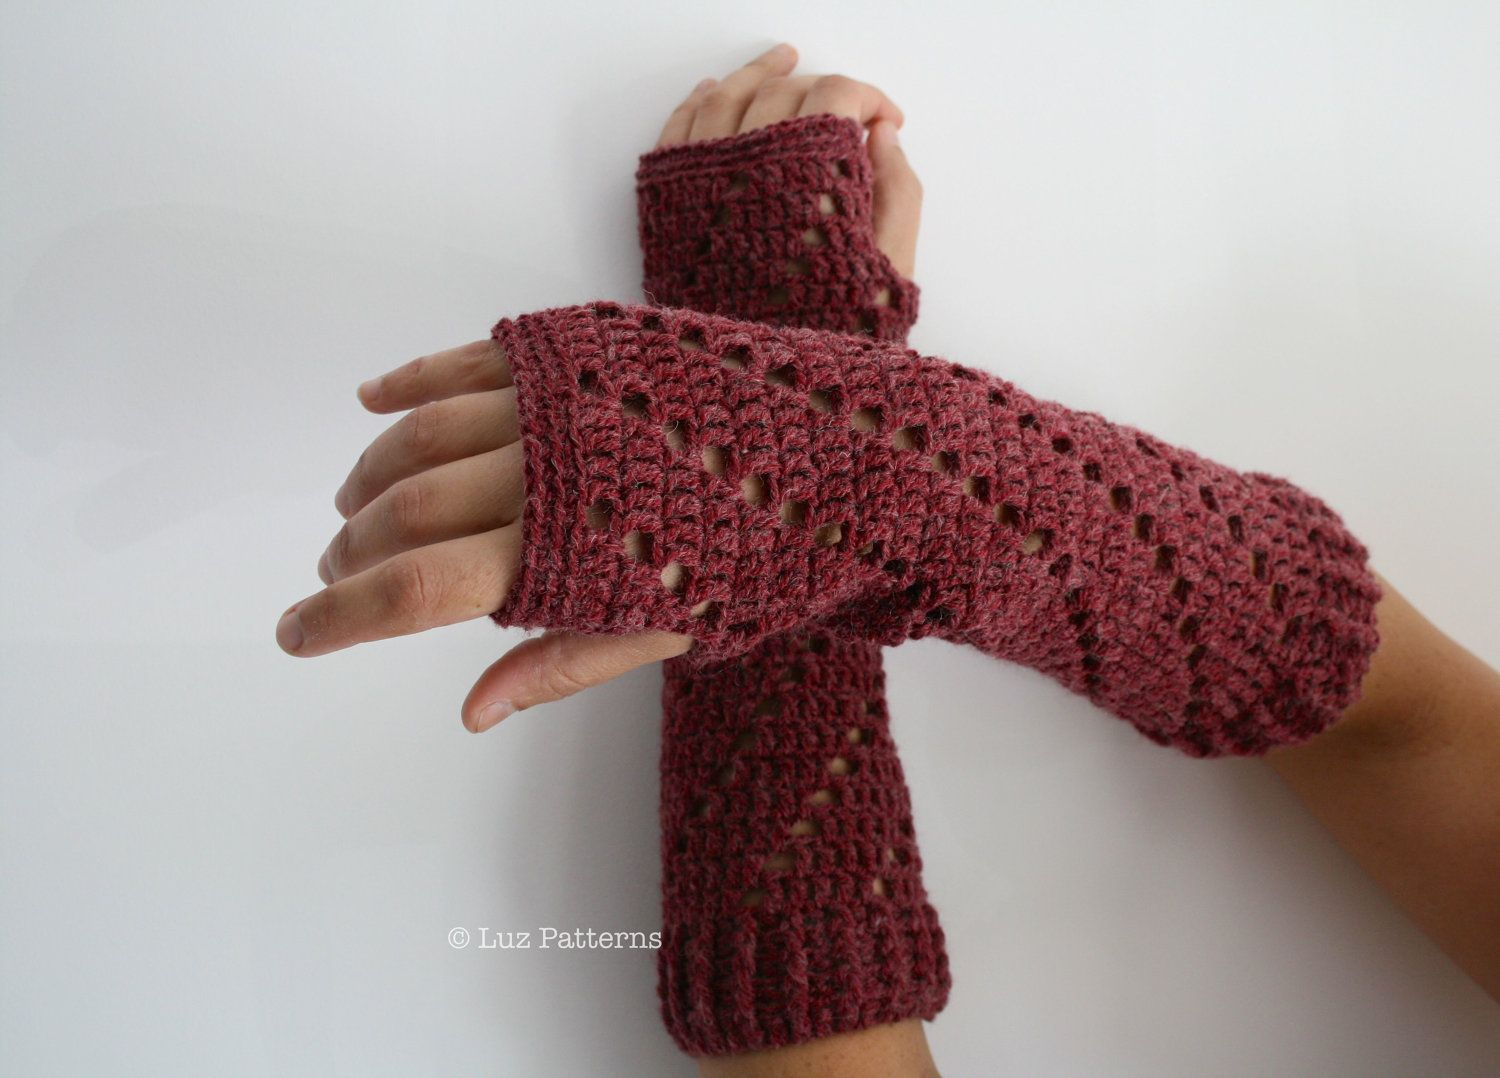 Crochet patterns girl and women arm warmer pattern wrist warmer crochet patterns girl and women arm warmer pattern wrist warmer crochet pattern instant download fingerless glove pattern 113 bankloansurffo Choice Image